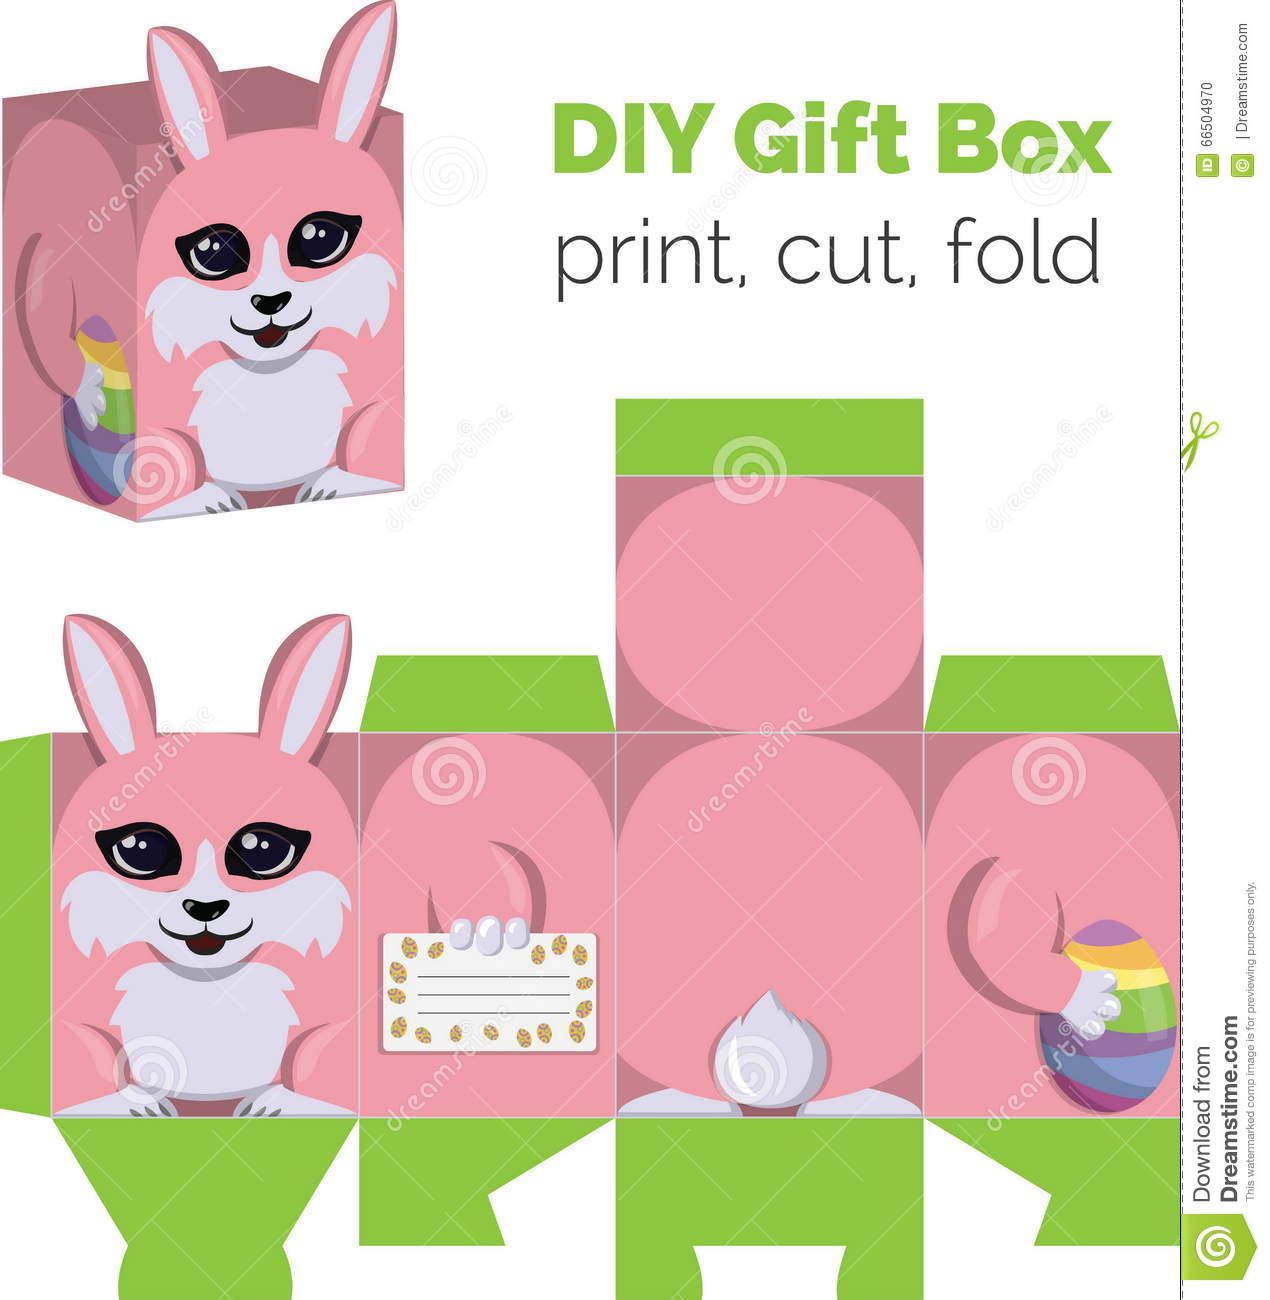 Adorable do it yourself diy easter bunny with egg gift box with adorable do it yourself diy easter bunny with egg gift box with ears for sweets candies small presents printable royalty free vector negle Image collections